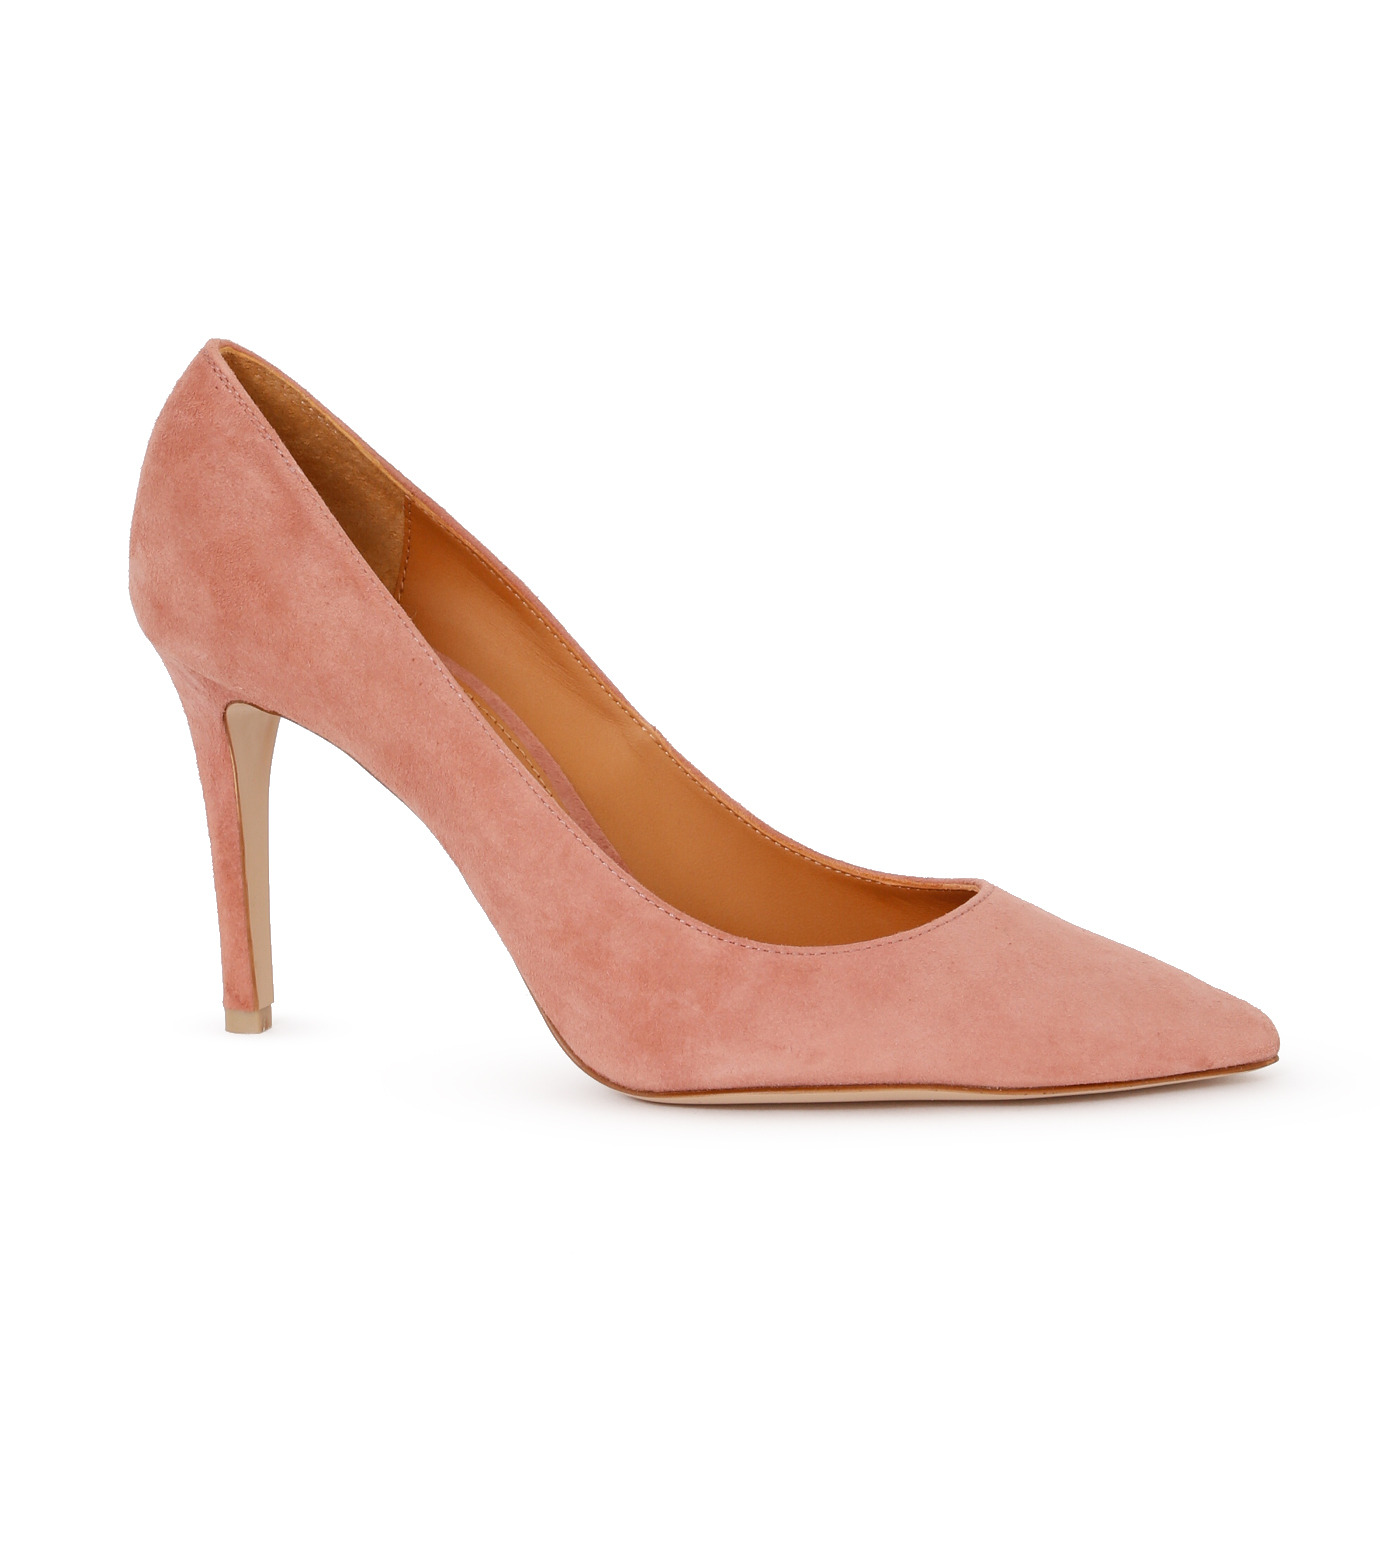 PIPPICHIC(ピッピシック)のPointed Toe 85mm Heel Pumps-LIGHT PINK(パンプス/pumps)-PP16-PPP9-L 拡大詳細画像1